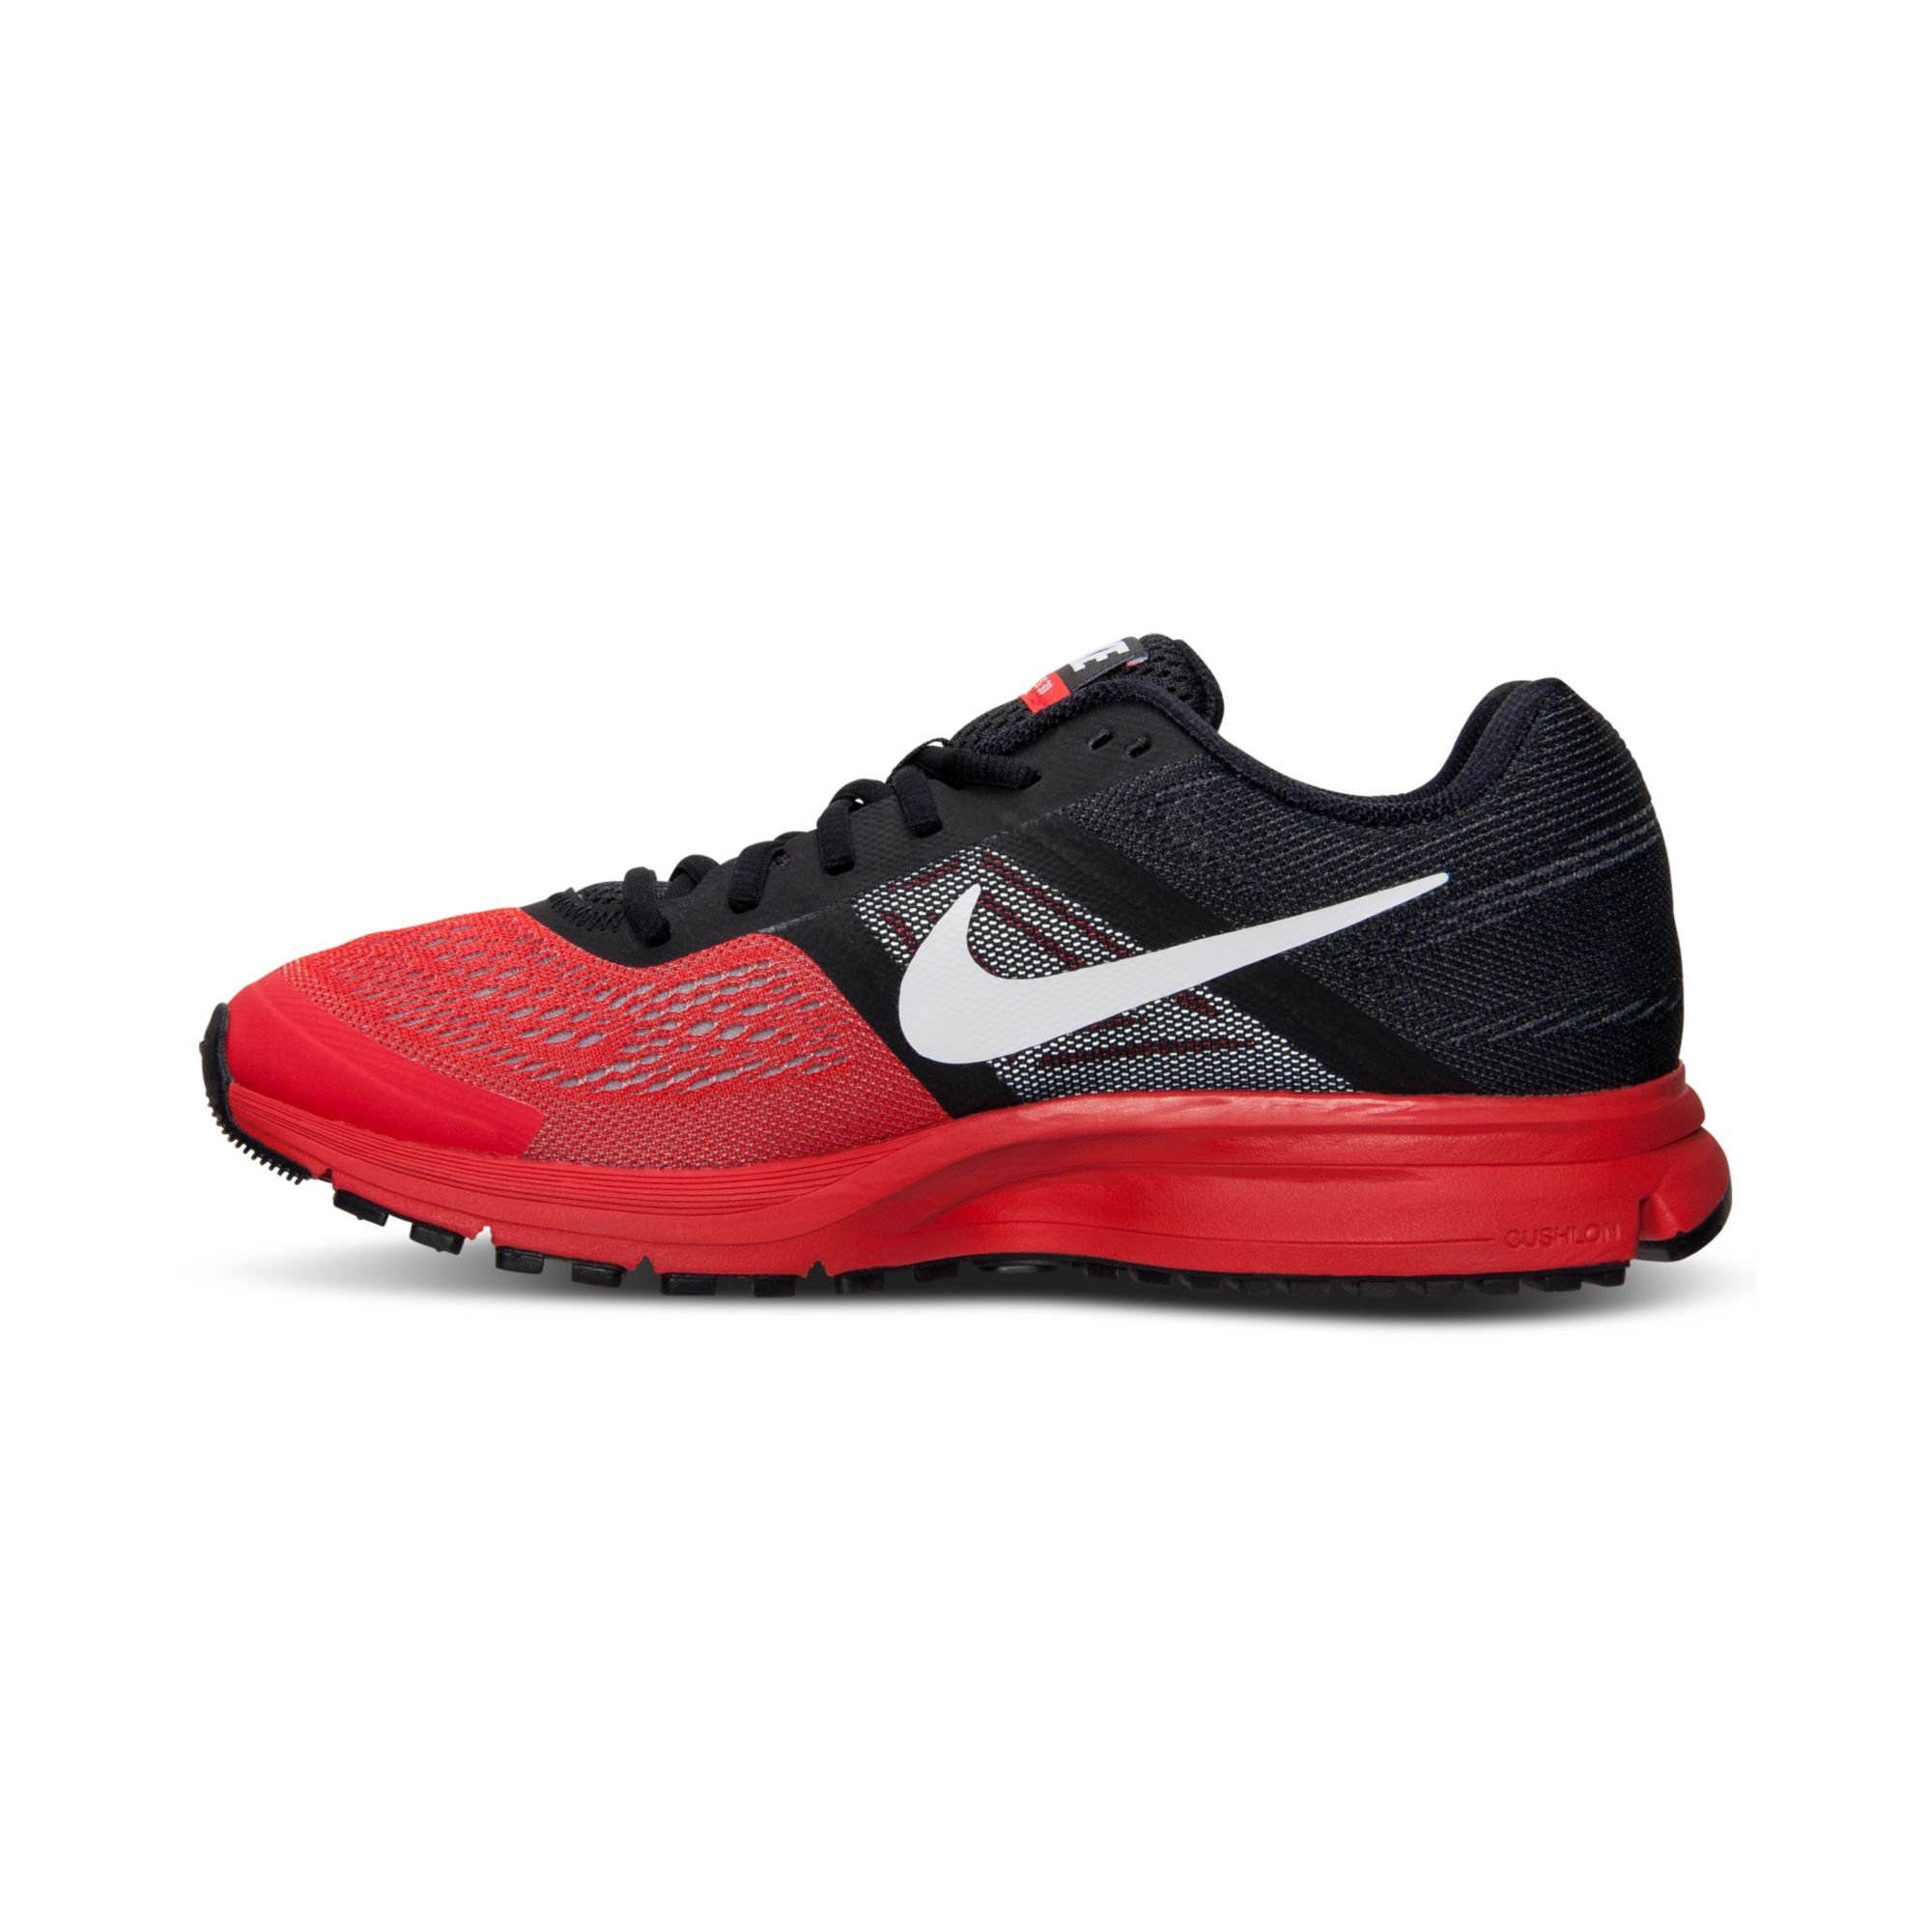 Whether you are going for gold, or just running for the bus, Nike athletic shoes for men provide the comfort and performance necessary to reach your goals. Sellers on eBay offer an excellent selection of new and used Nike athletic shoes, making it easy to find a .